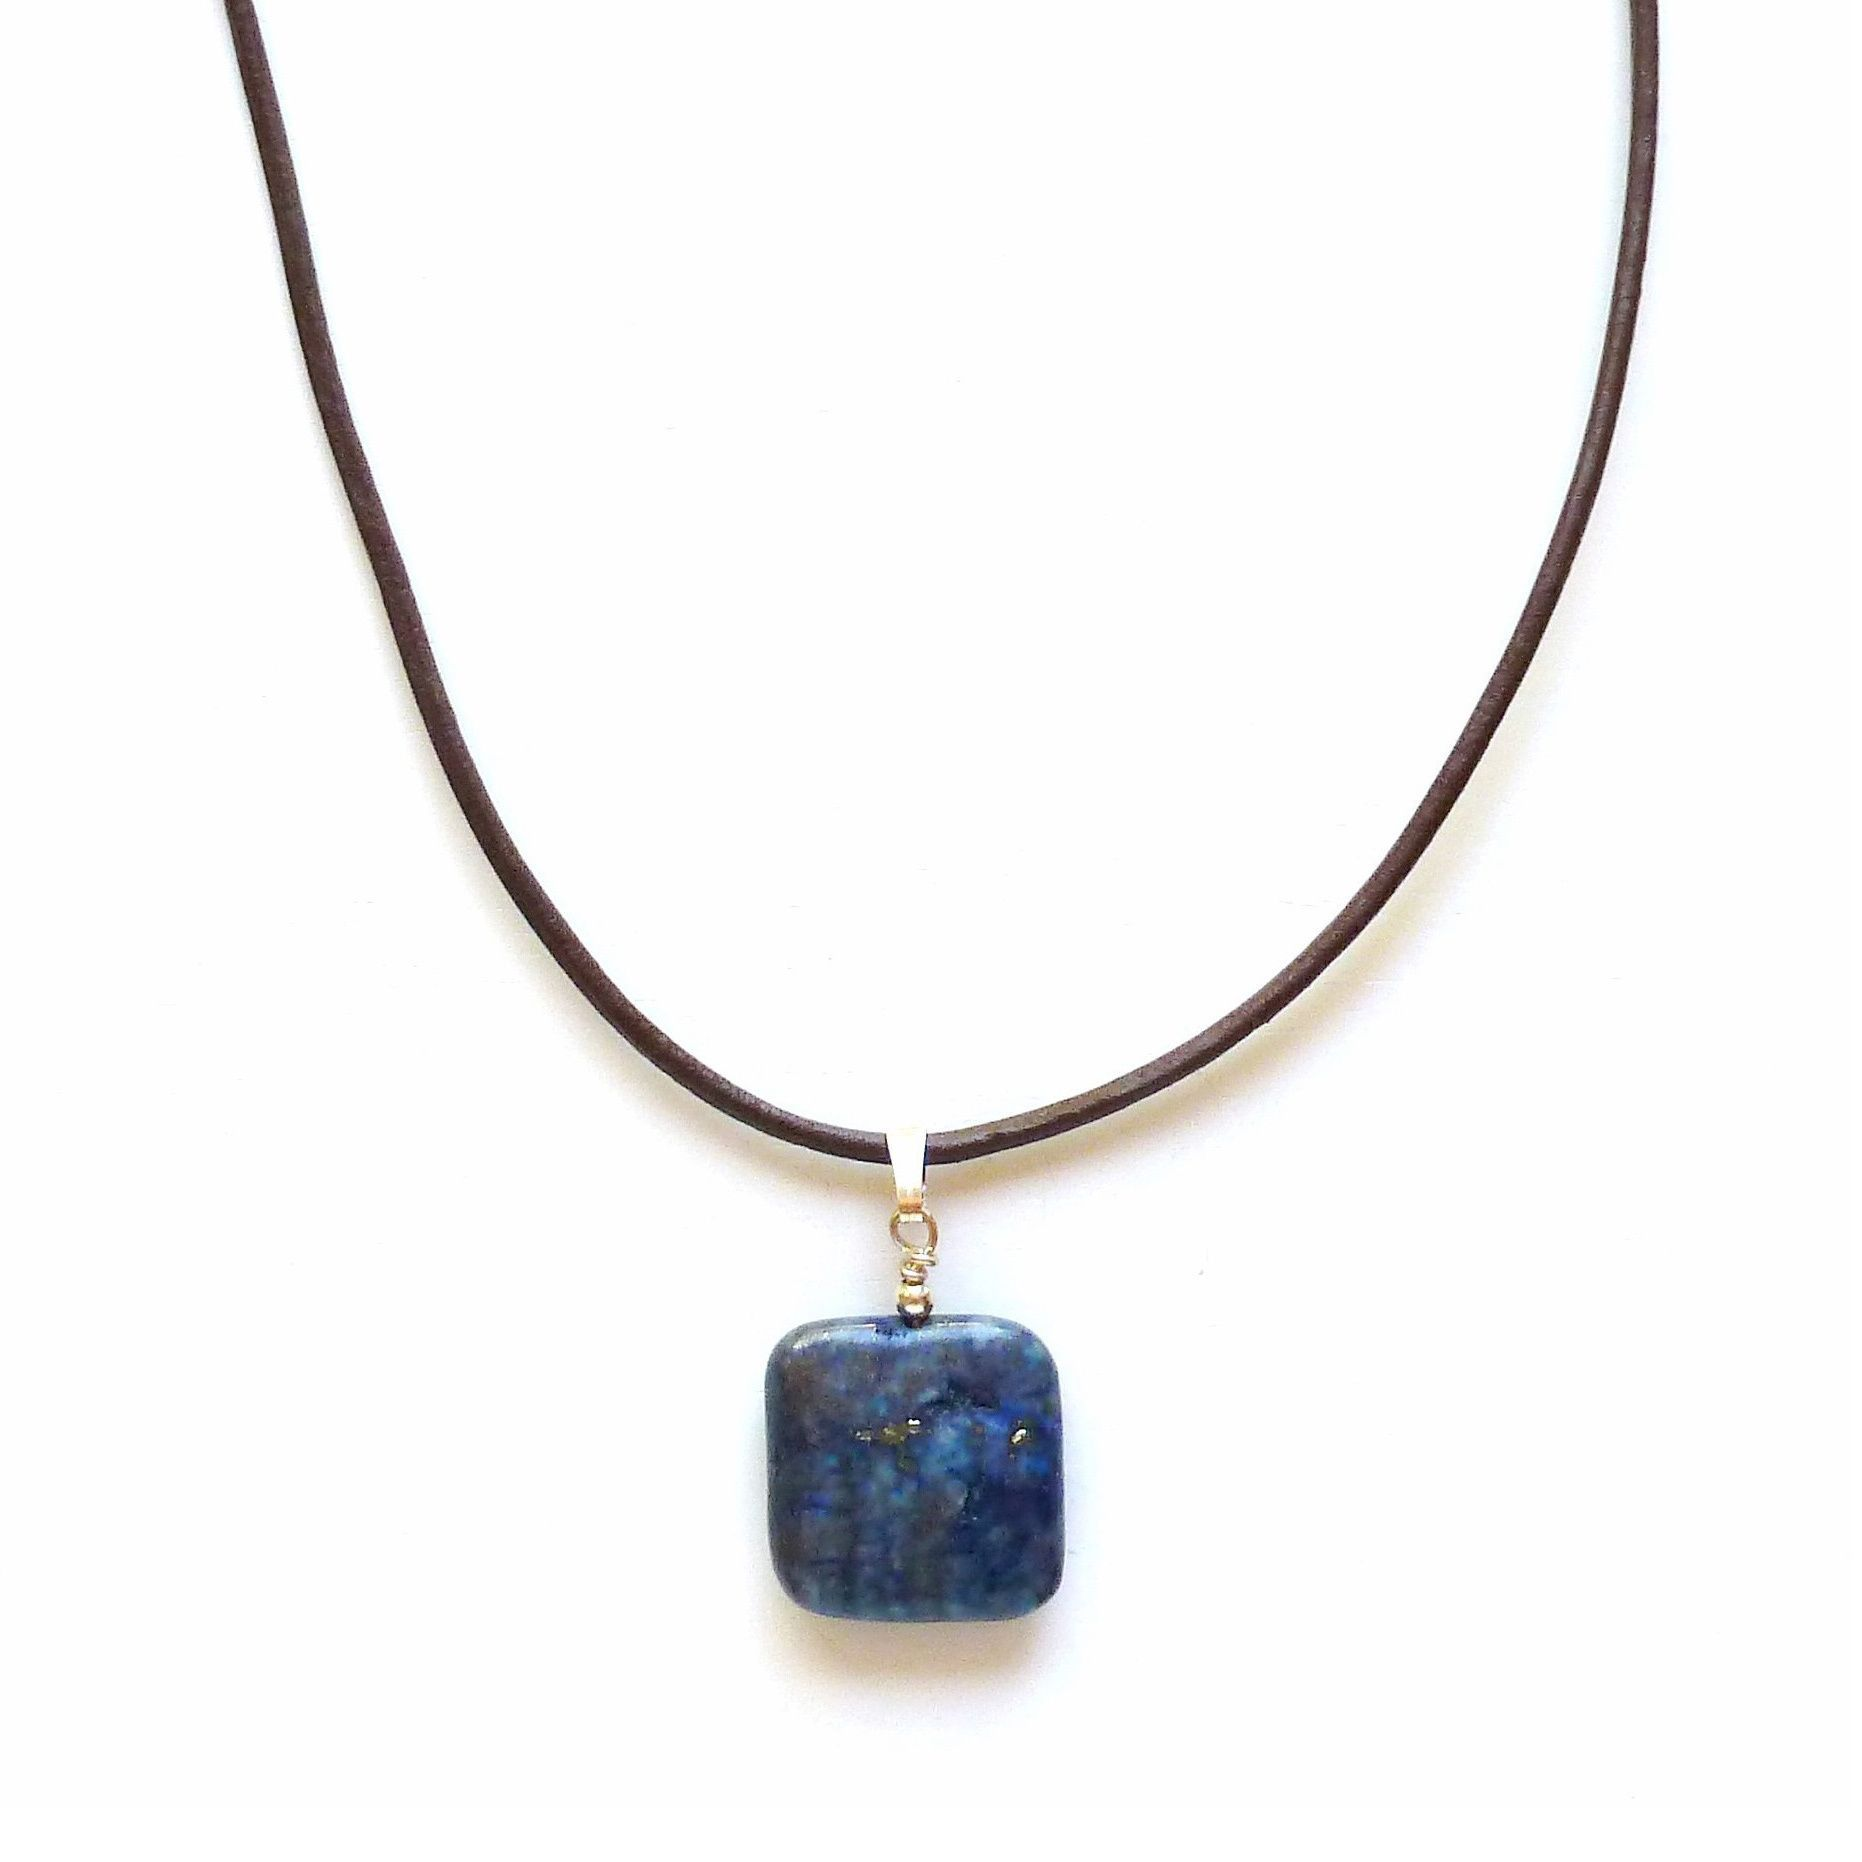 This stylish pendant features a contemporary squarecut lapis